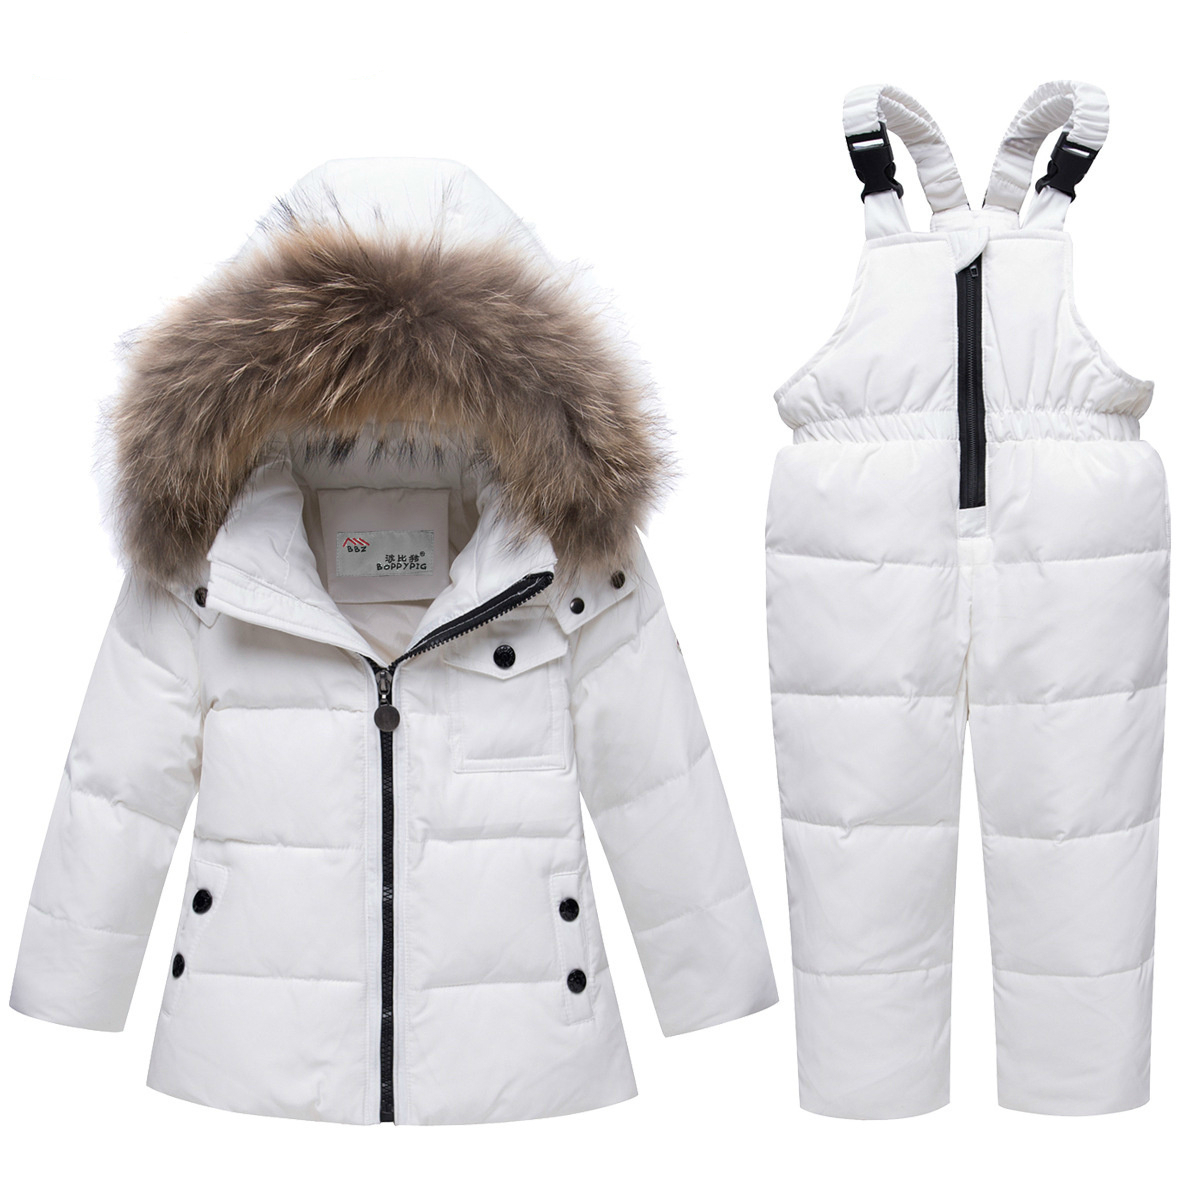 1939b5181ed8 Parka real Fur hooded boy baby overalls girl winter down jacket warm ...